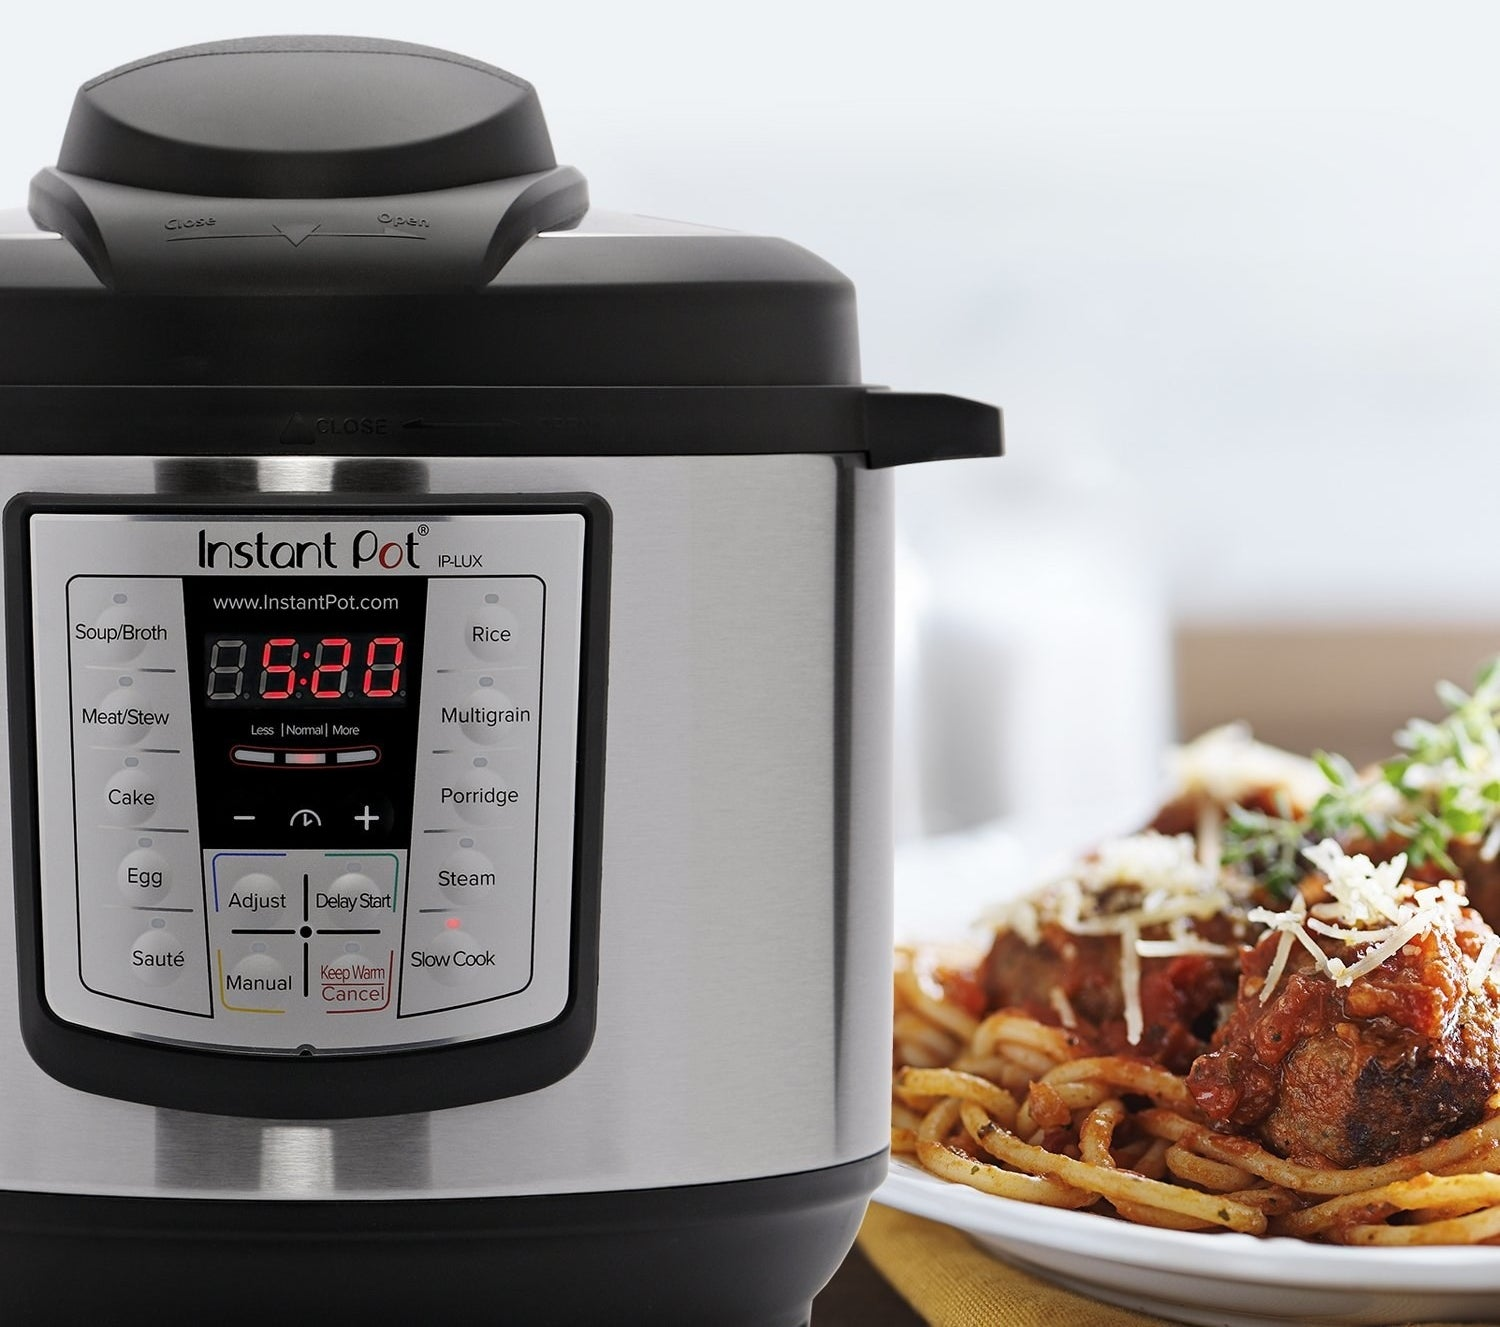 "This combines six kitchen appliances in one — pressure cooker, slow cooker, rice cooker, sauté, steamer, and warmer. It can prepare food up to 70% faster. It can keep food warm automatically for up to 10 hours, and there are three temperatures for sauté and slow-cook. The inner cooking pot, lid, and steam-rack are dishwasher-safe!Promising review: ""This is probably the only kitchen appliance I've ever bought that has earned permanent status on my kitchen counter. I use it at least three times a week. It's particularly perfect for vegans and WFPB-eaters. I can cook beans and grains from scratch in no time! Such a wonderful investment. I liked it so much that I got one for each of my sisters for the holidays. Best. Thing. Ever."" —cynthia w. rogersPrice: $58.75+ (available in three sizes)Check out our review of the incredible Instant Pot!"